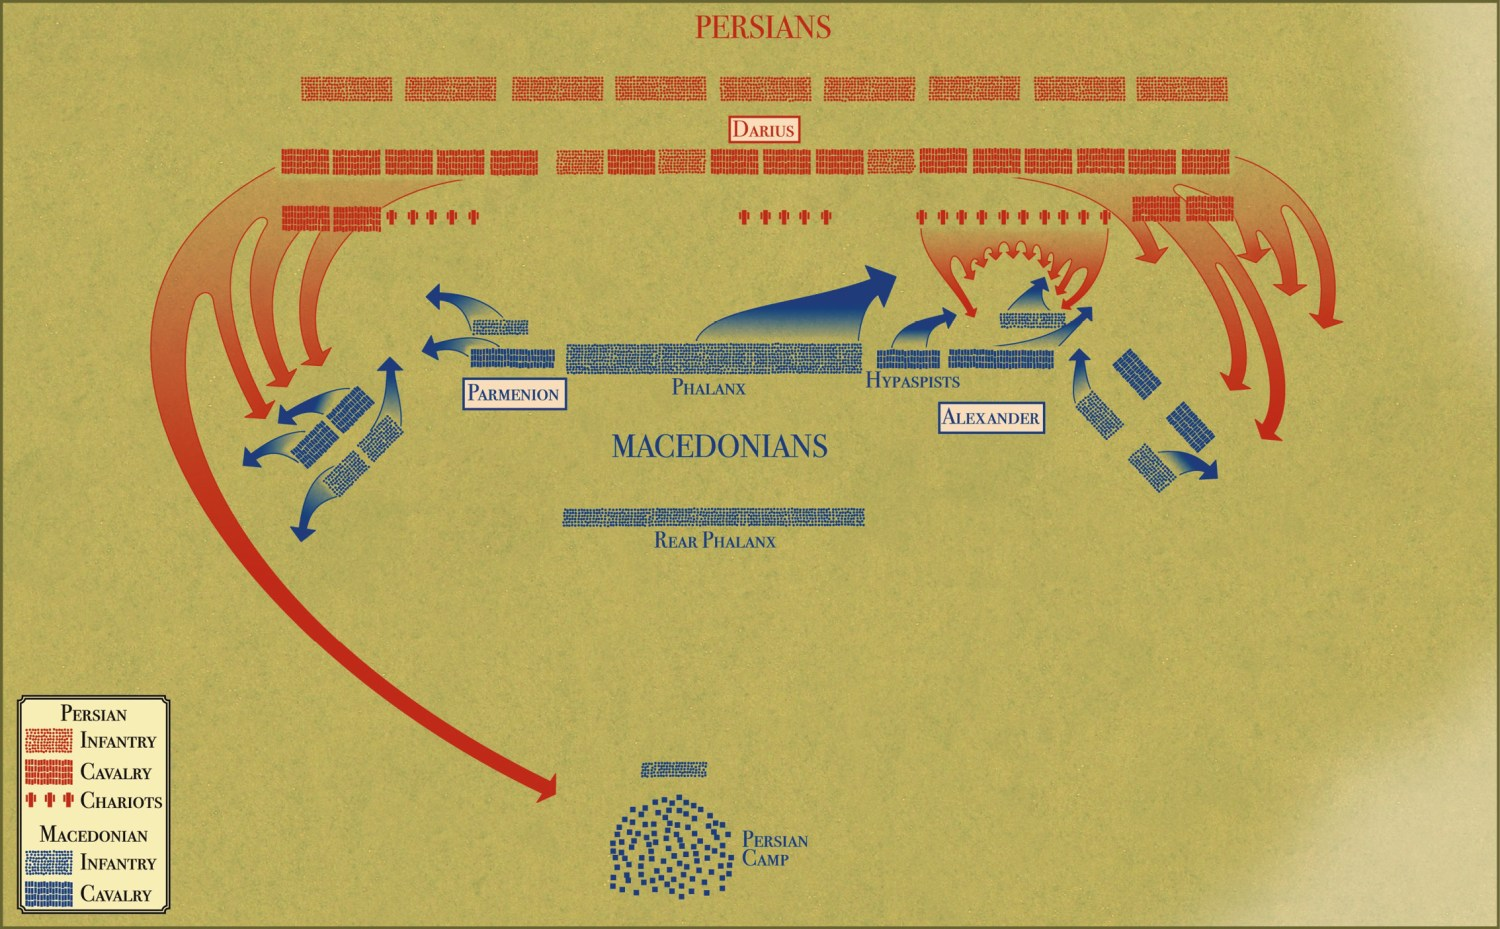 ABOVE The dispositions of the armies, Gaugamela, 1 October 331 BC. The plan probably understates the numerical preponderance of the Persians, making Alexander's army seem relatively larger than it was. It also assumes the echeloning of the Macedonian line occurred only once the advance began. But the other essential elements of the tactical conception are clear: Alexander had his main weight on the right, both flanks were bent back to guard against envelopment, and a second reserve line stood ready to cover all contingencies.